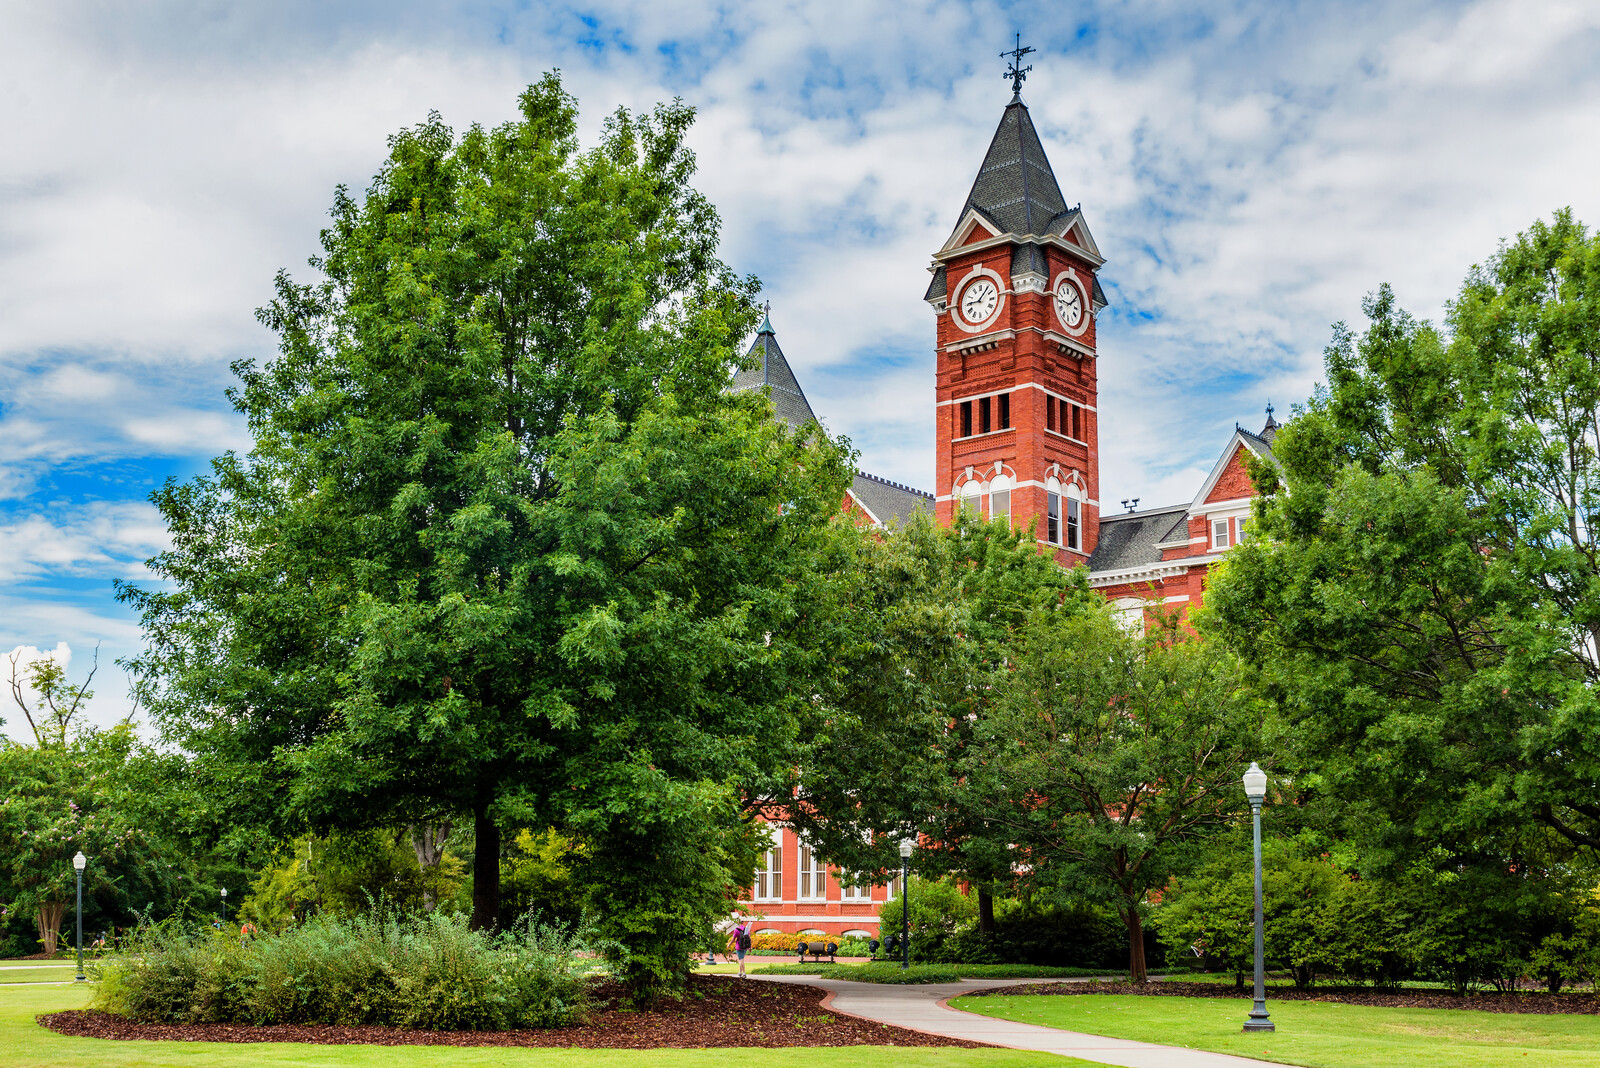 Auburn college campus with historic red brick building in the back featuring a clock tower and gray shingled roof.  Green trees and green grass frame the scene with blue skies in the background